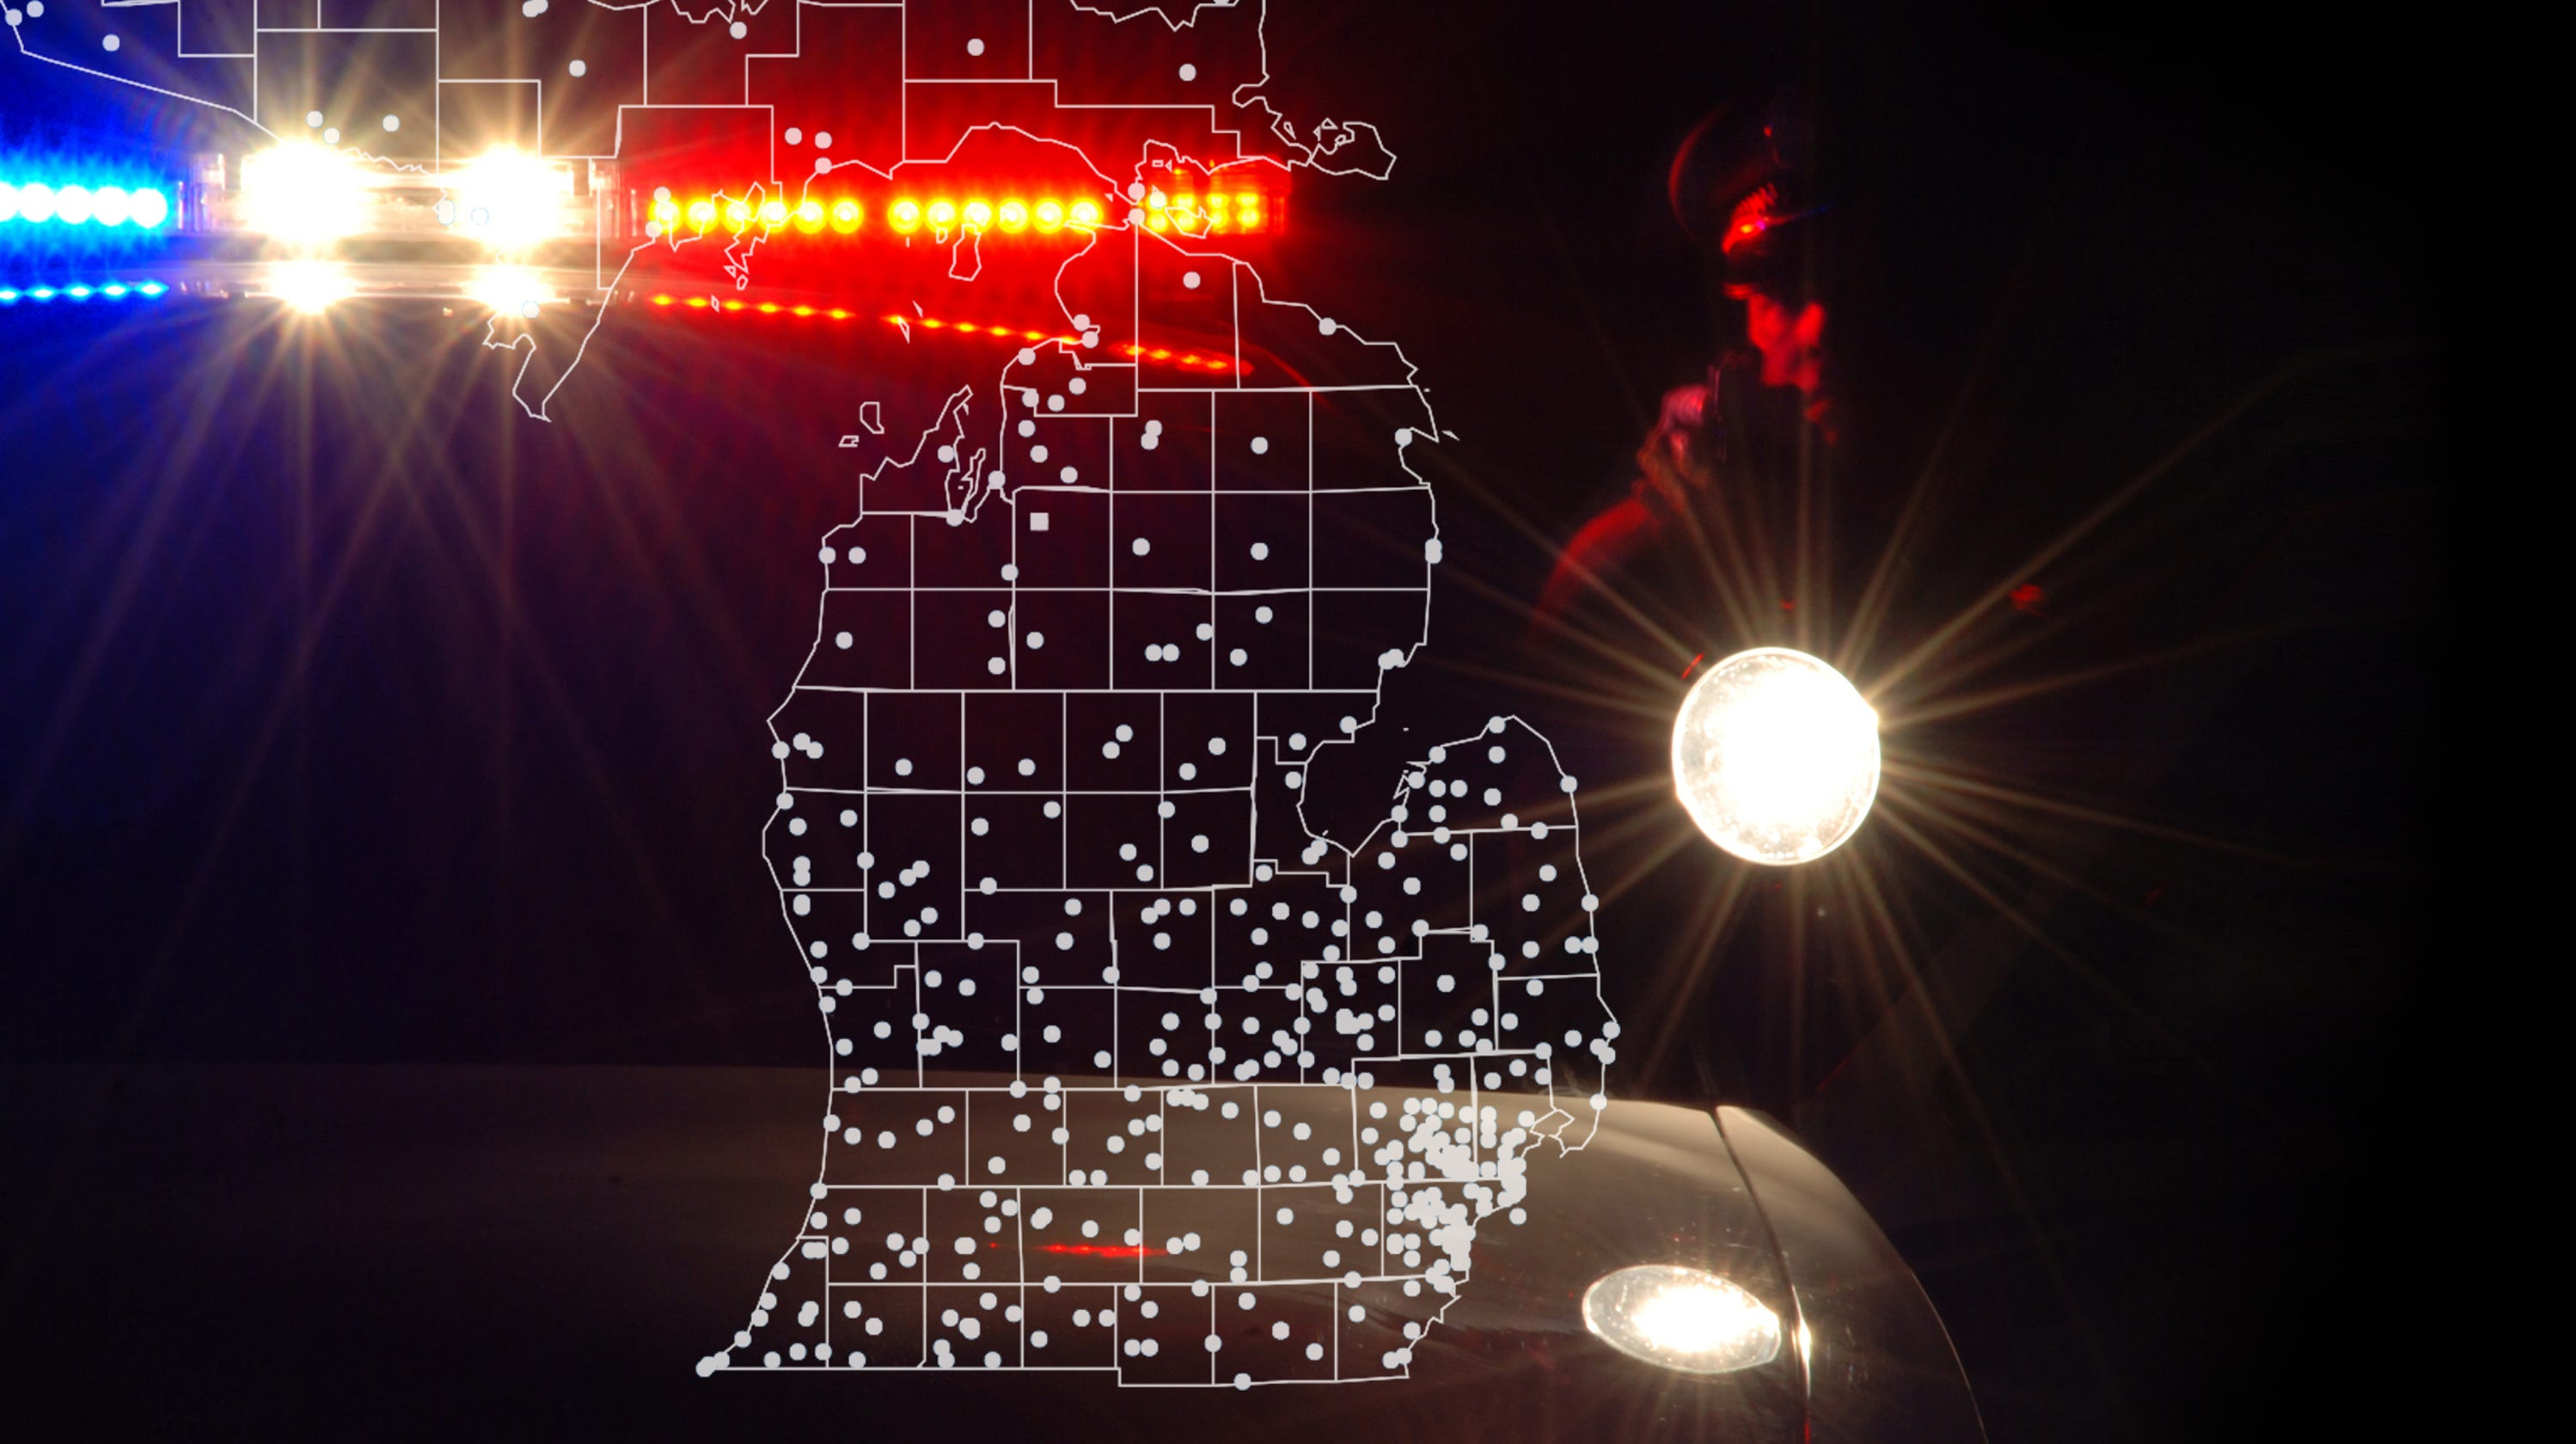 Michigan does not monitor 3K civilians who look like real cops